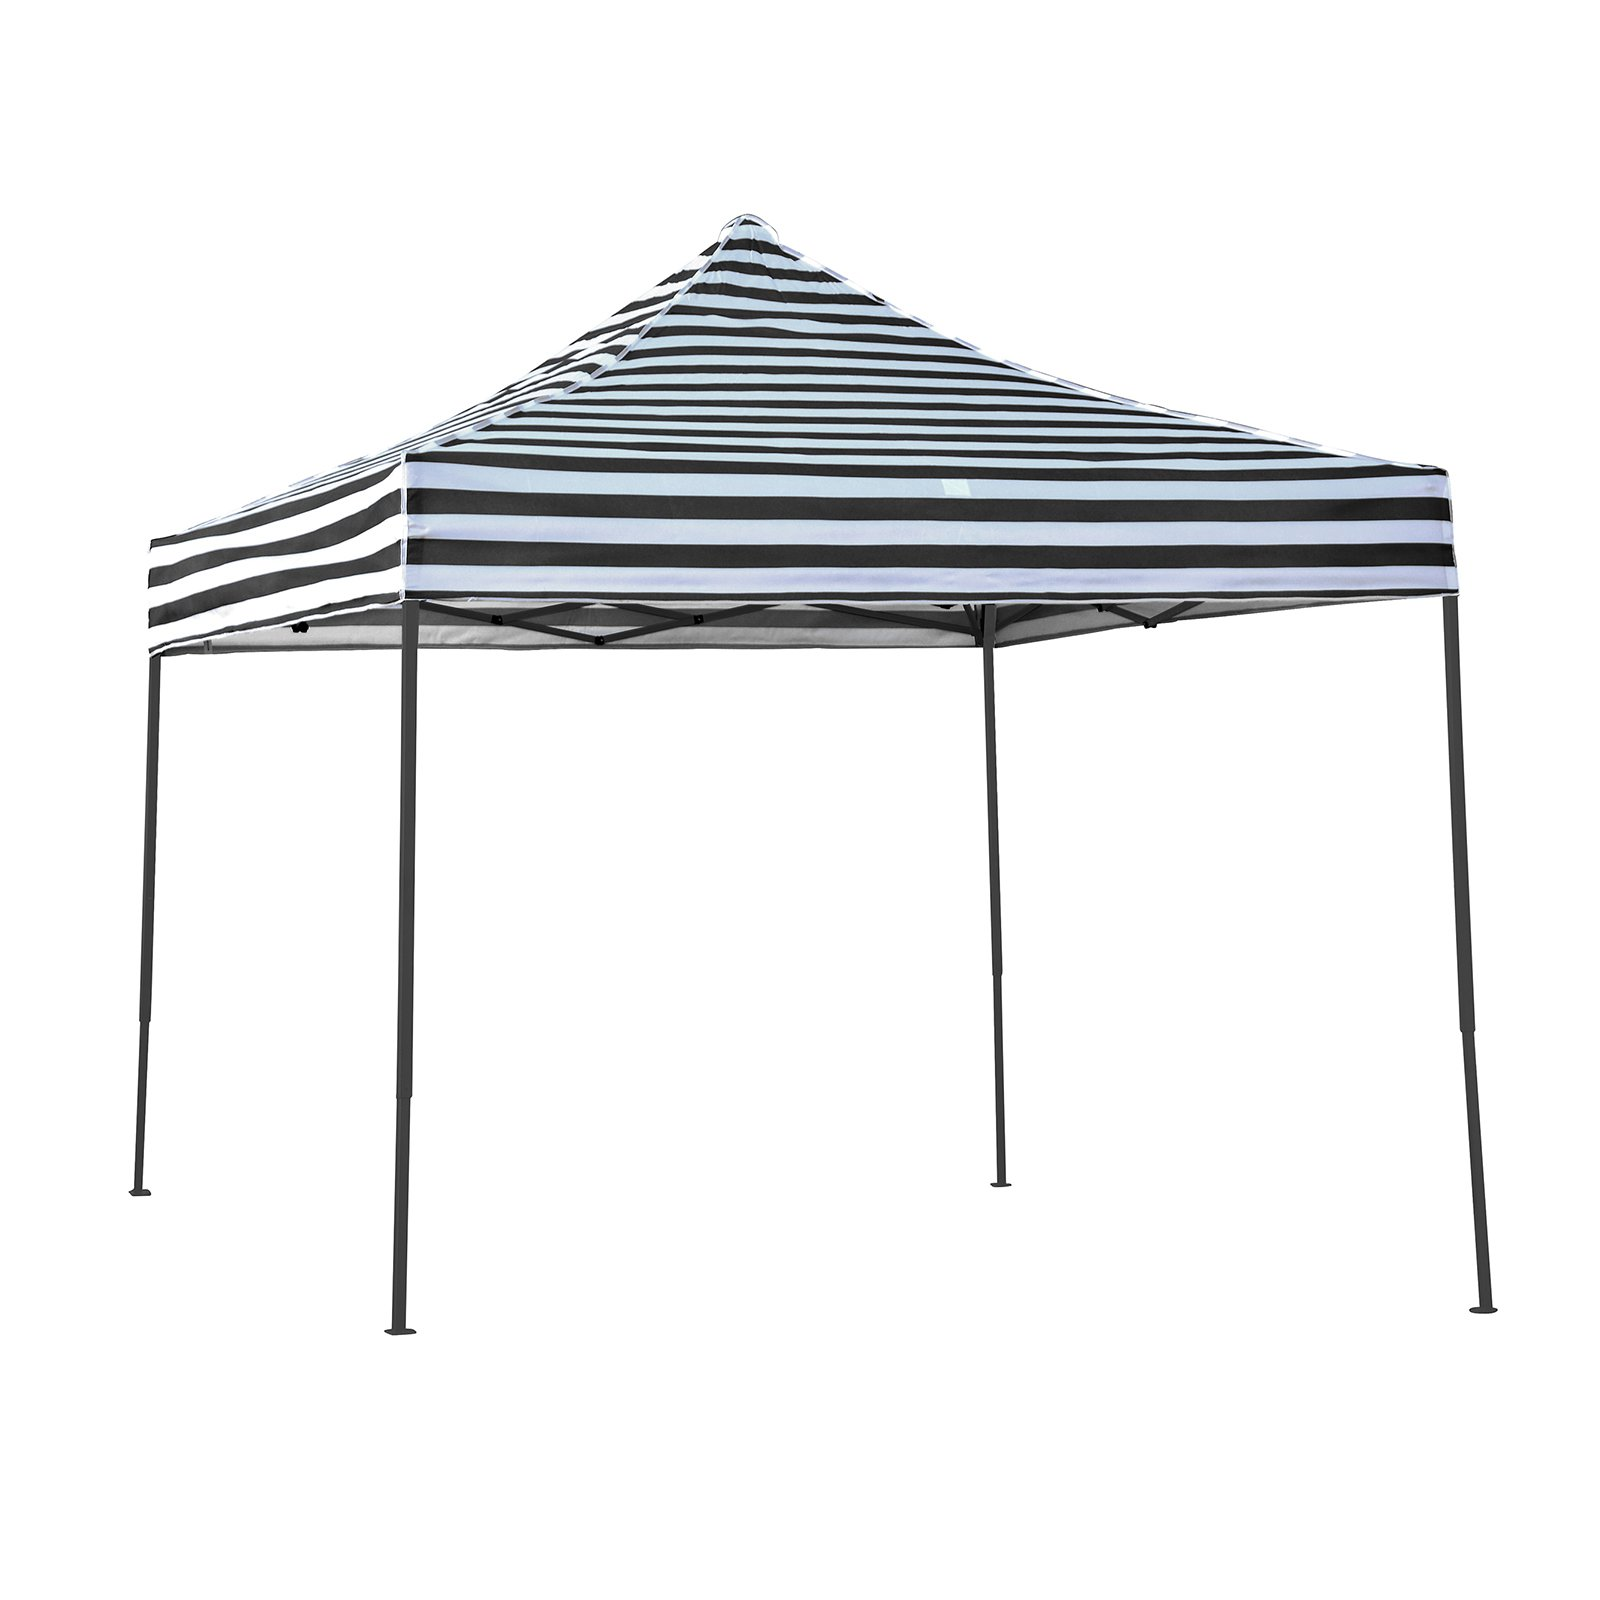 Lightweight And Portable Canopy Tent Set, 10u0027 X 10u0027, By Trademark  Innovations